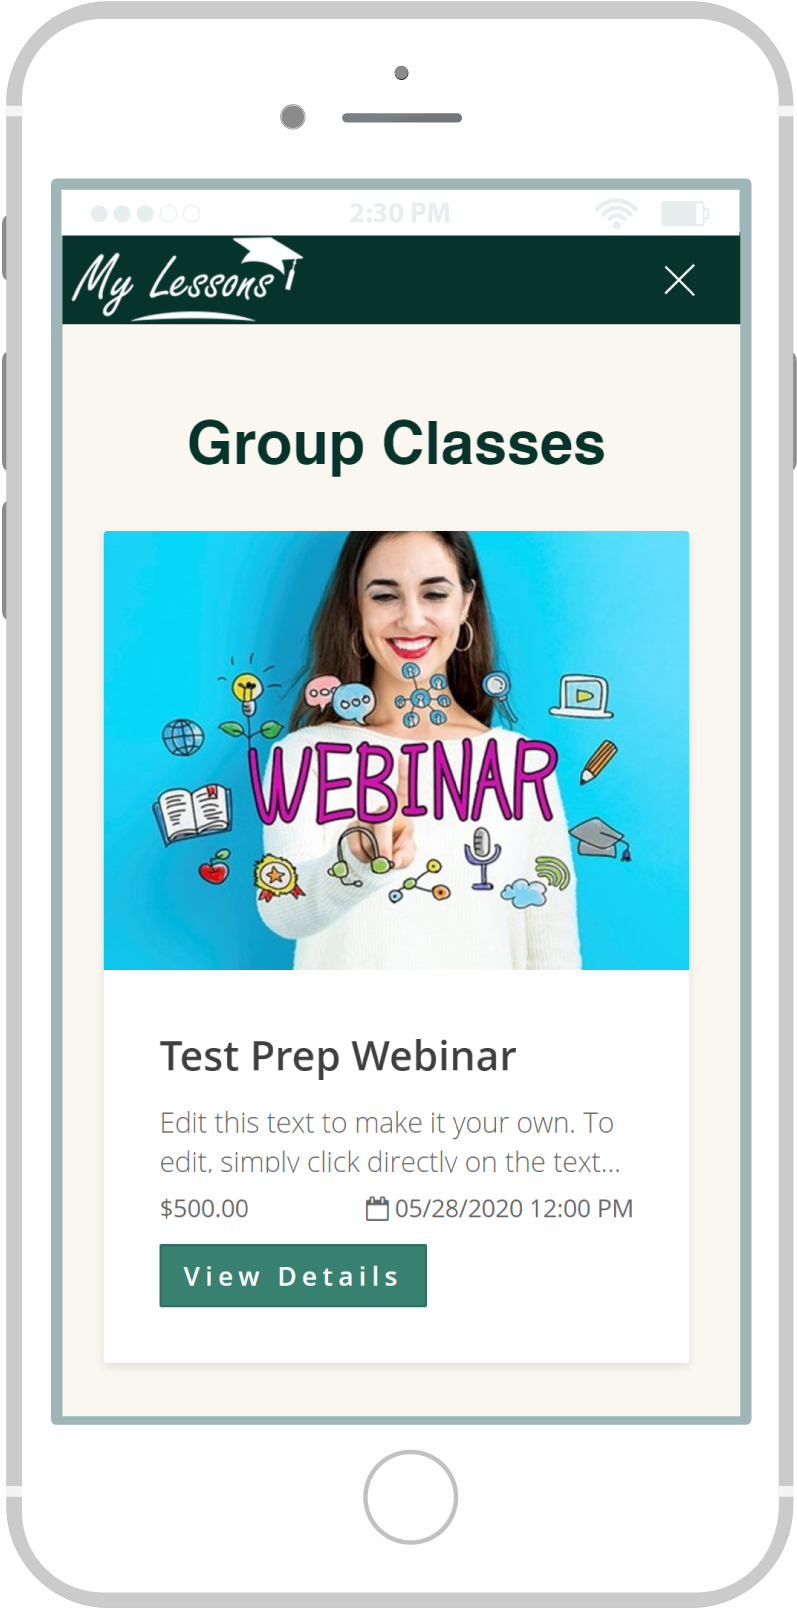 All-In-One Website To Sell Your Online Classes - My Lessons Mobile View 3 Example